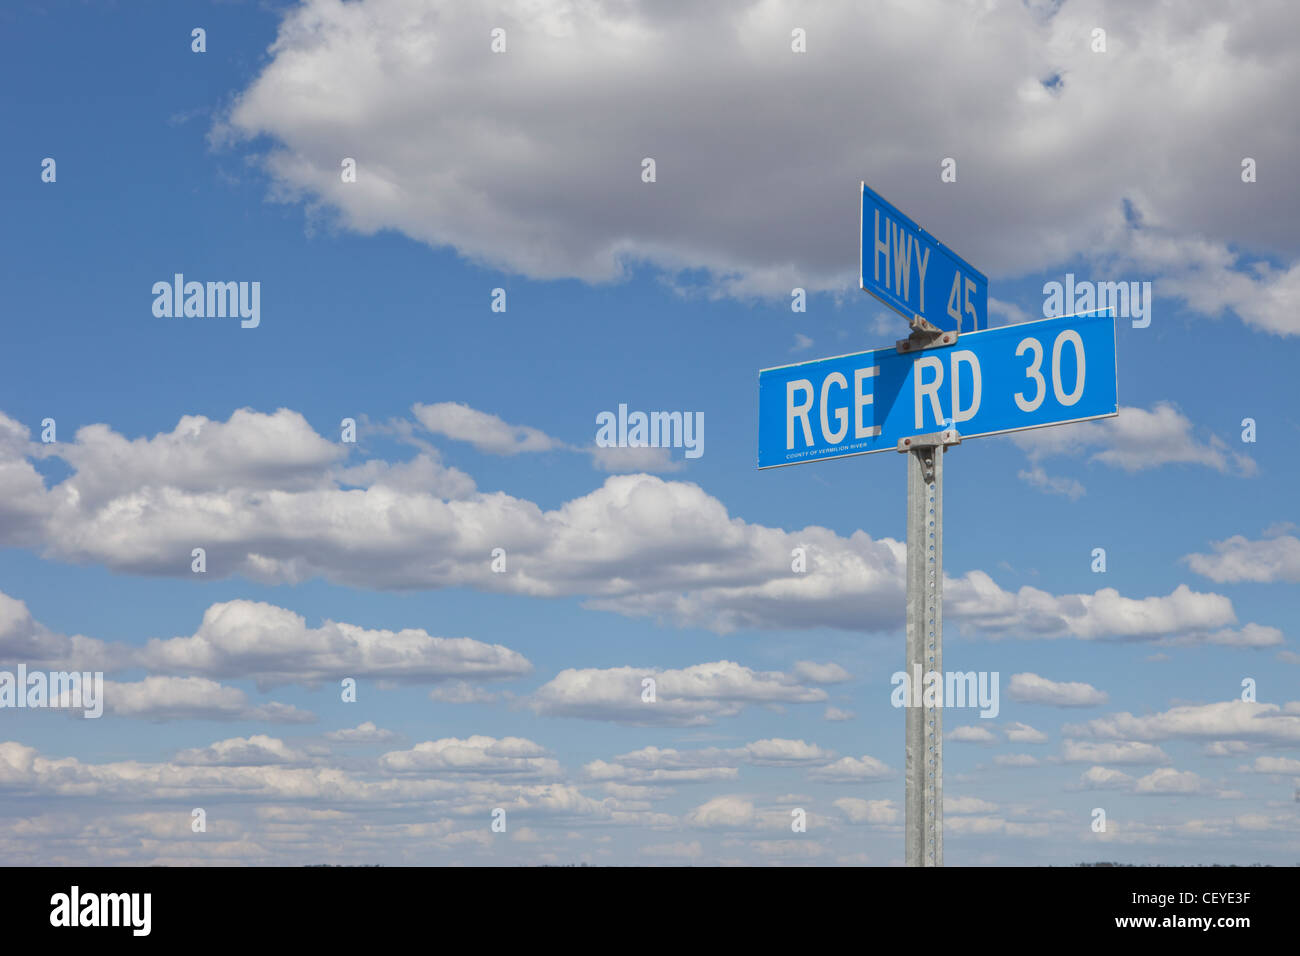 signs of two intersecting roads; alberta canada - Stock Image